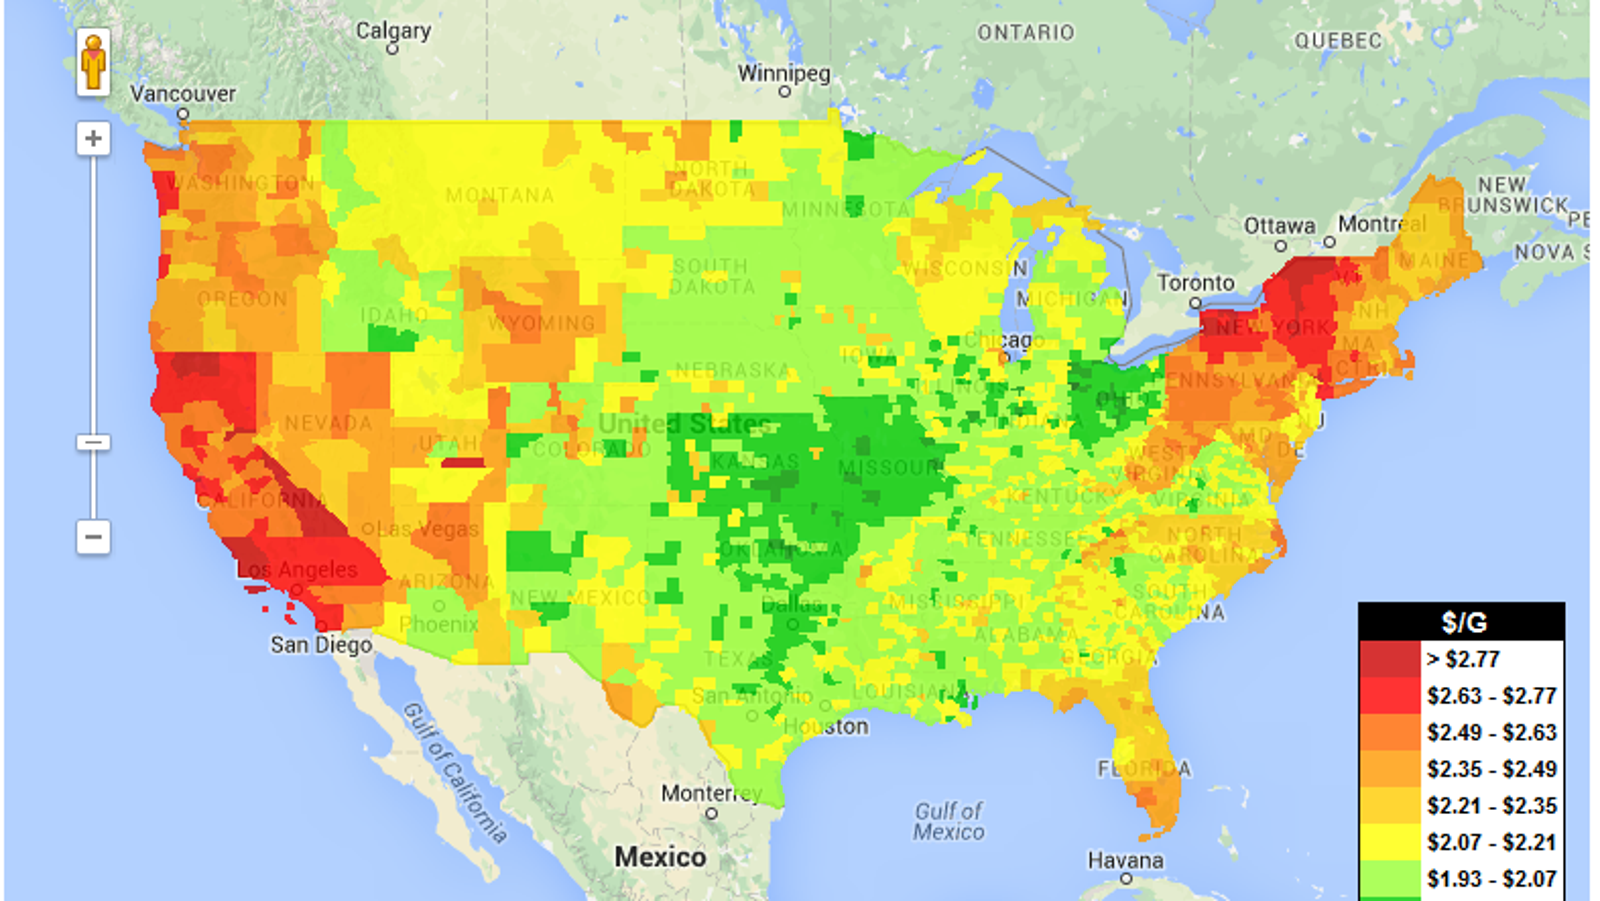 Use This Us Gas Price Heat Map To Design Cheapest Possible Road Trip